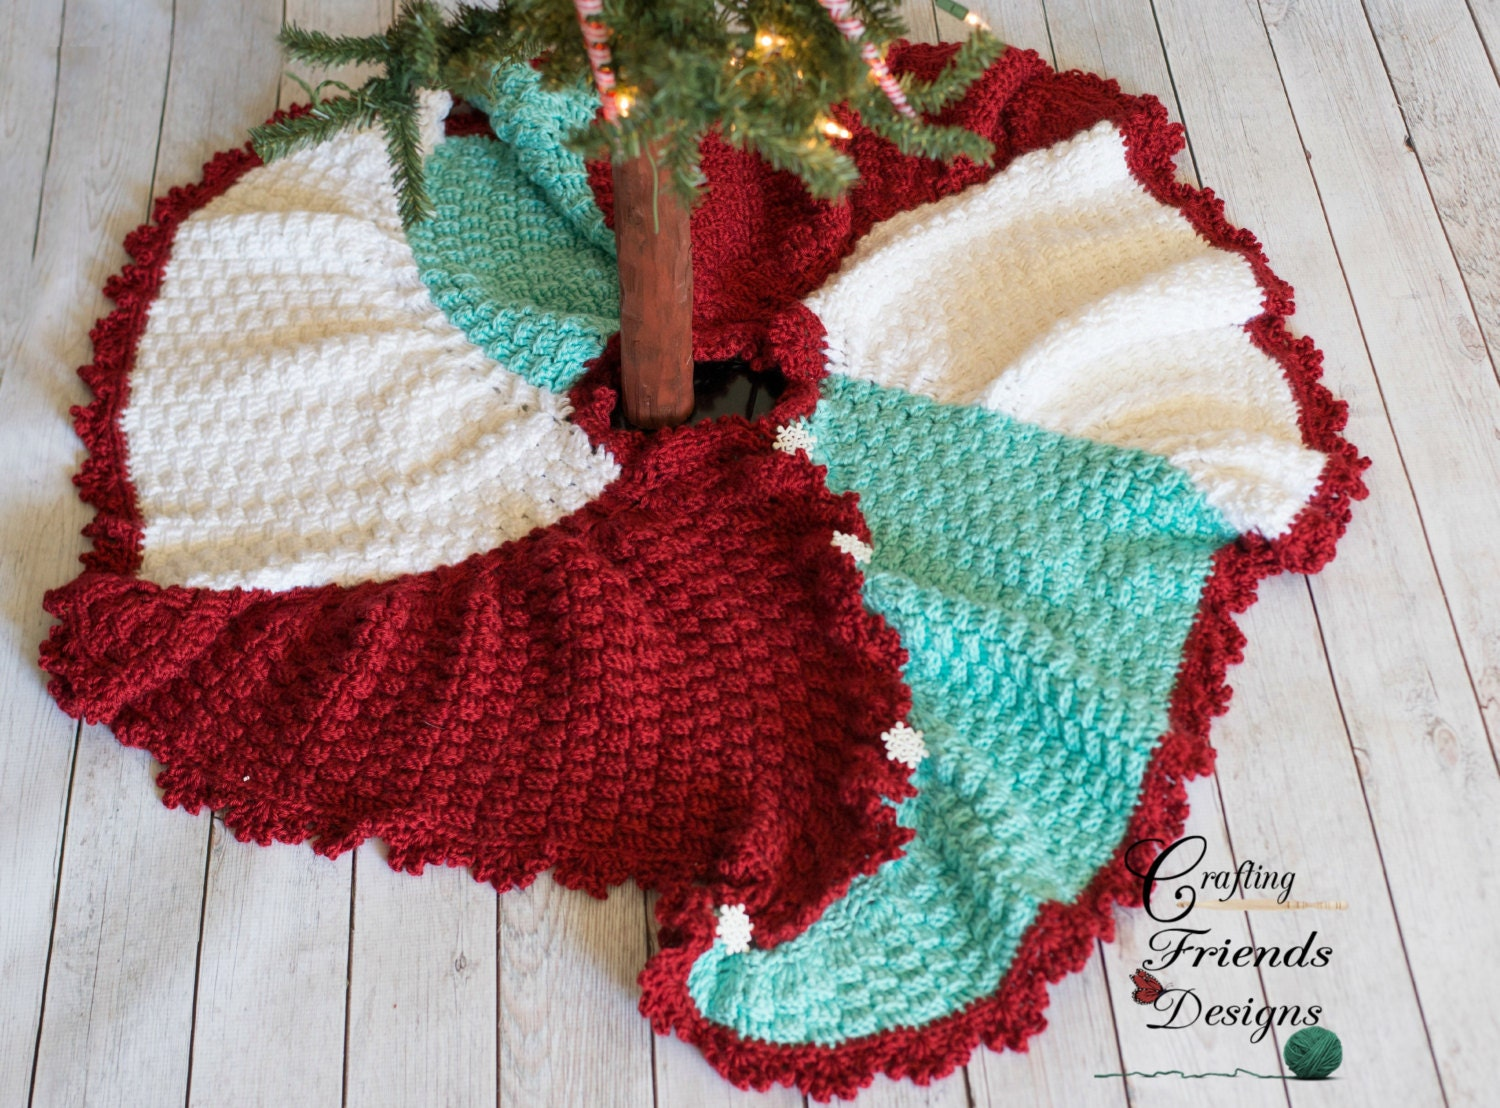 Crochet pattern trisquare swirl christmas tree skirt warm